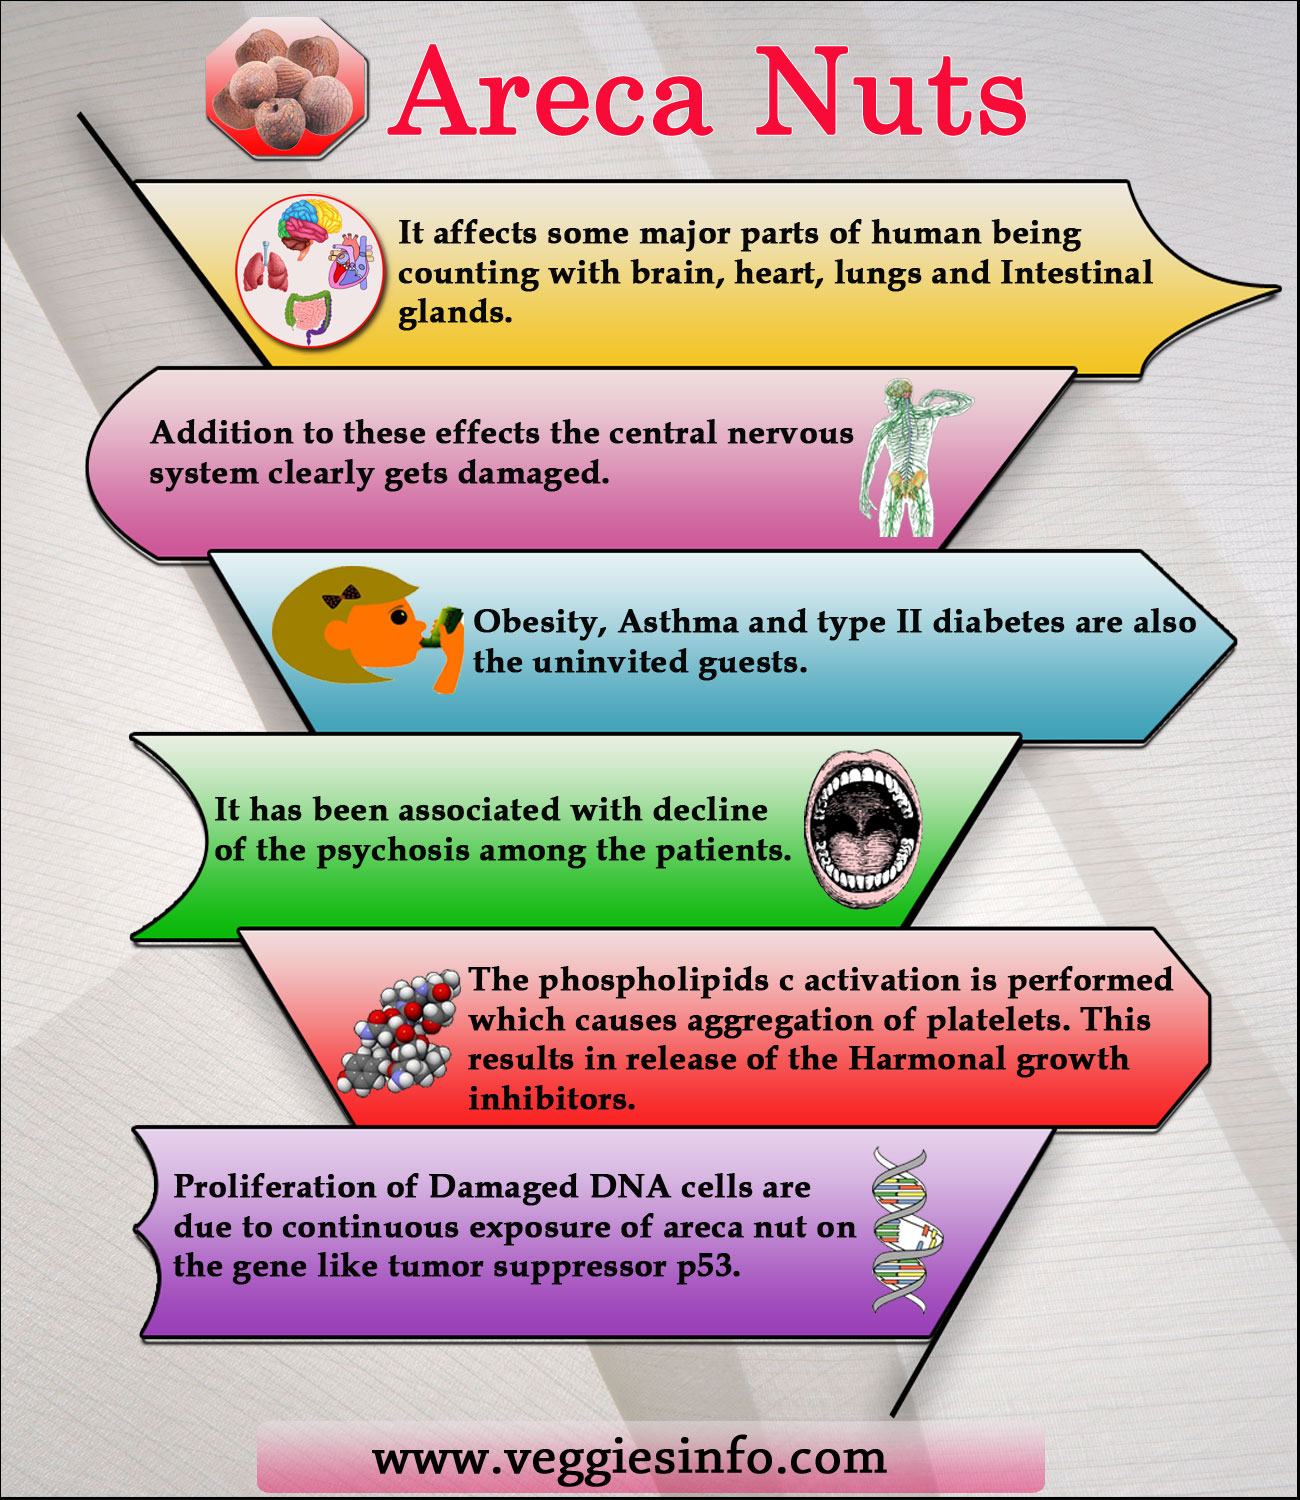 Areca Nuts Unknown Facts